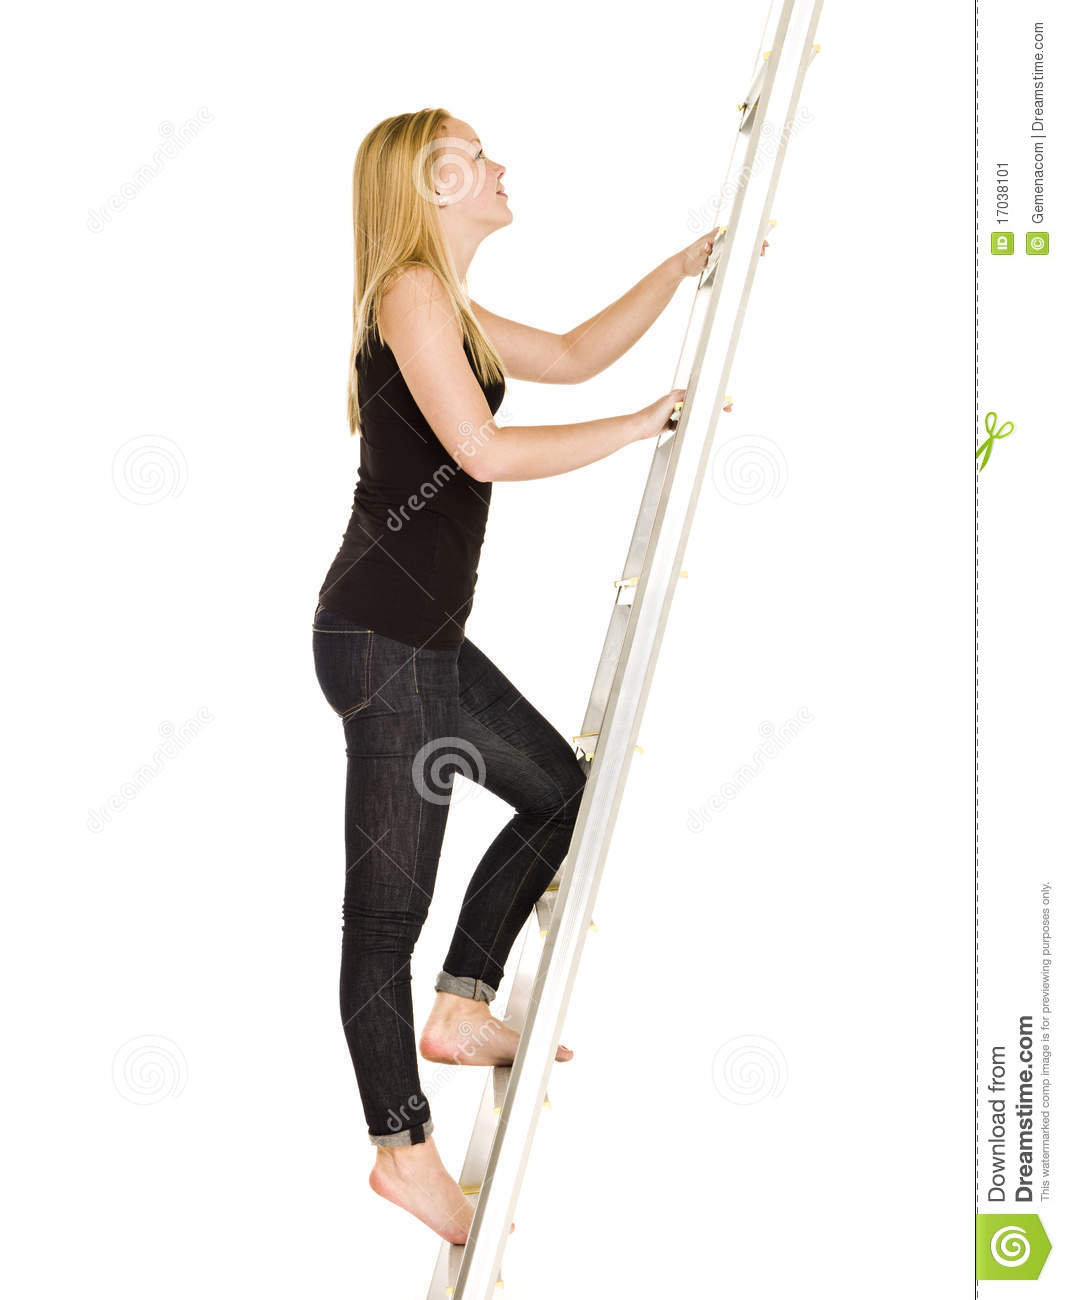 w climbing up the ladder stock image image  w climbing up the ladder